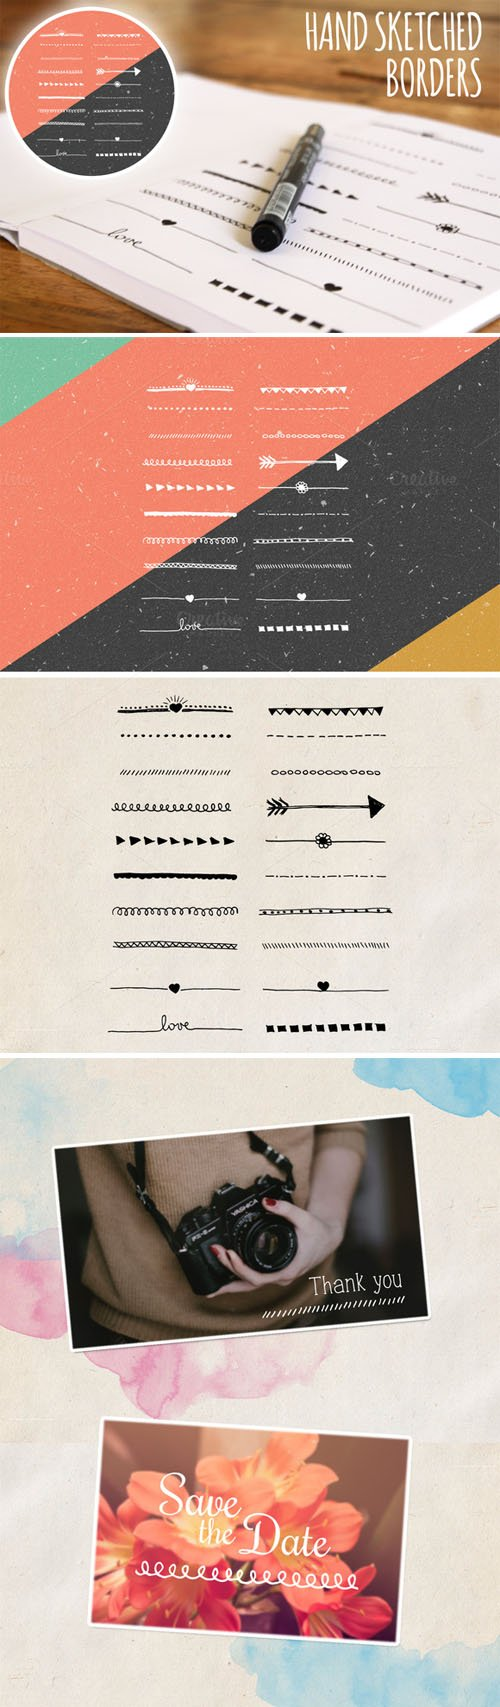 Hand Sketched Borders - Creativemarket 78181